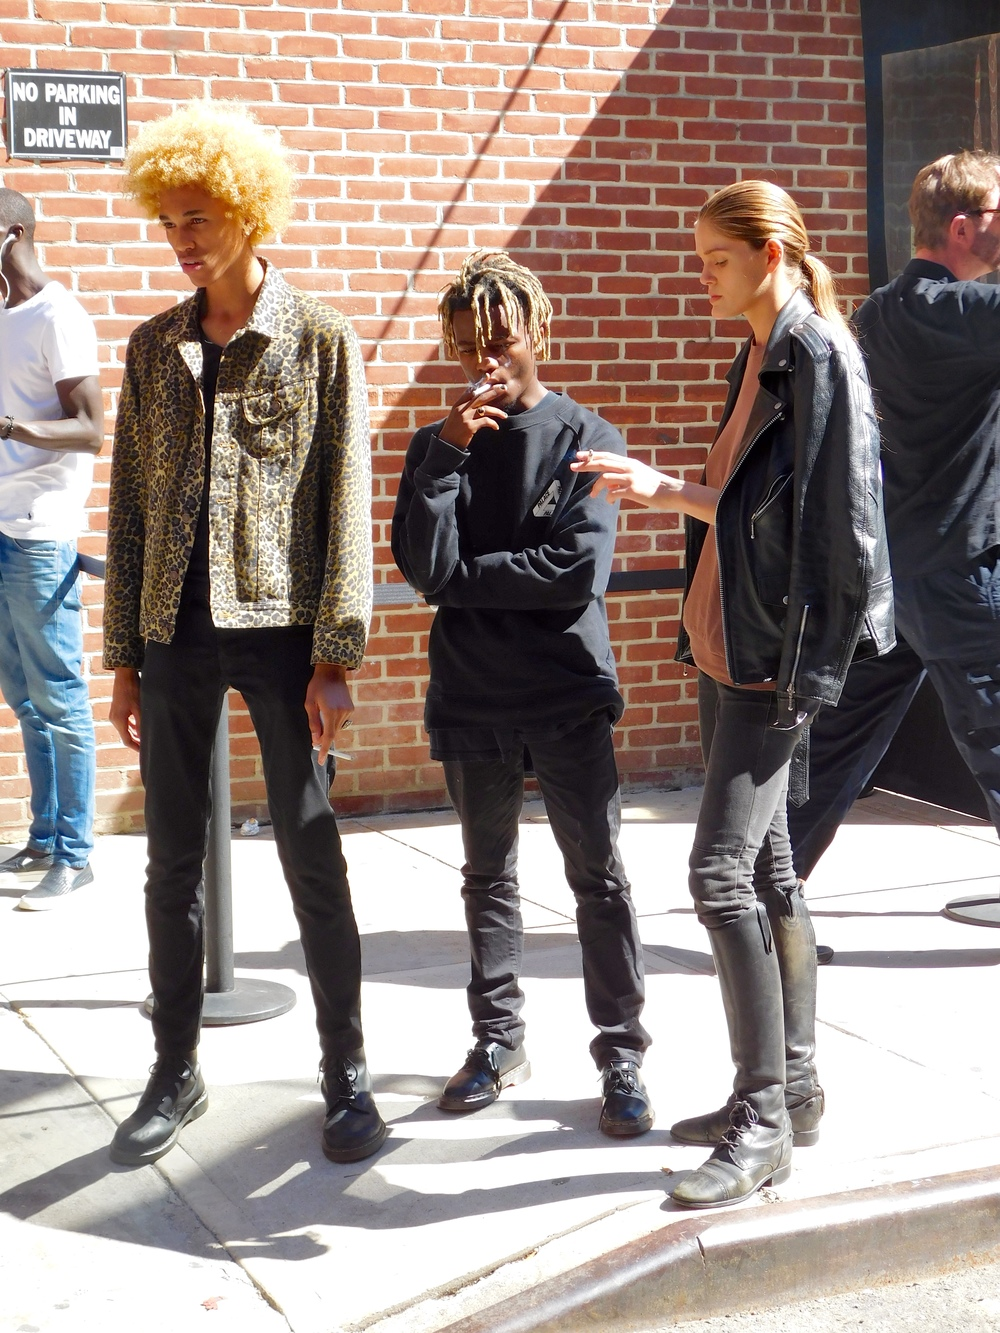 Michael Lockley and Ian Connor having a smoke break before the walked in Yeezy Season 2.